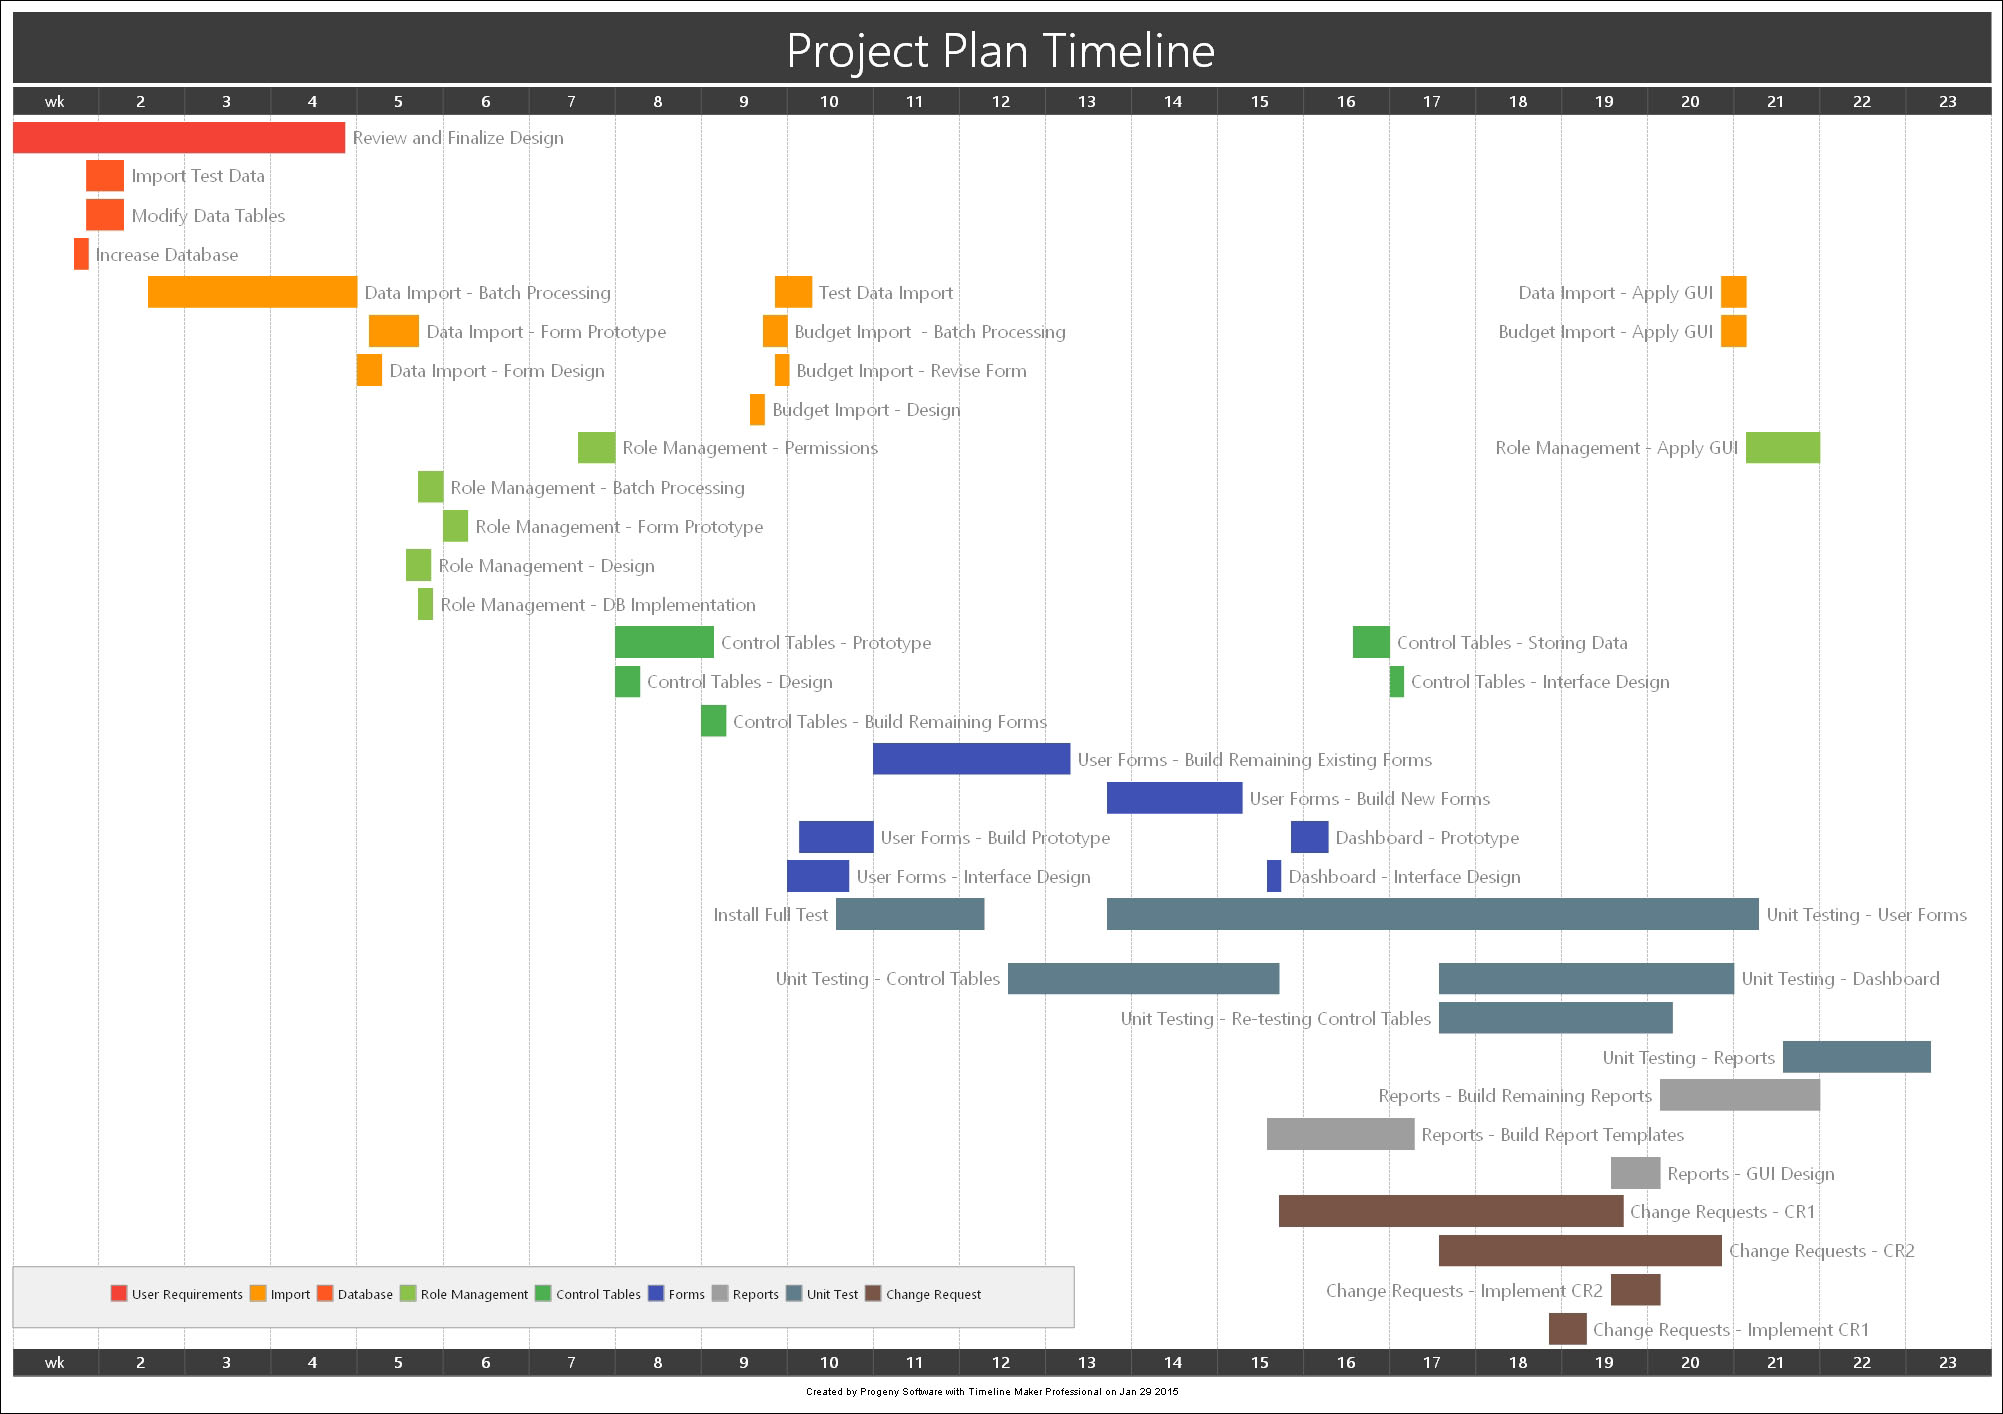 Project Plan Bar Chart Timeline Created By Timeline Maker Pro